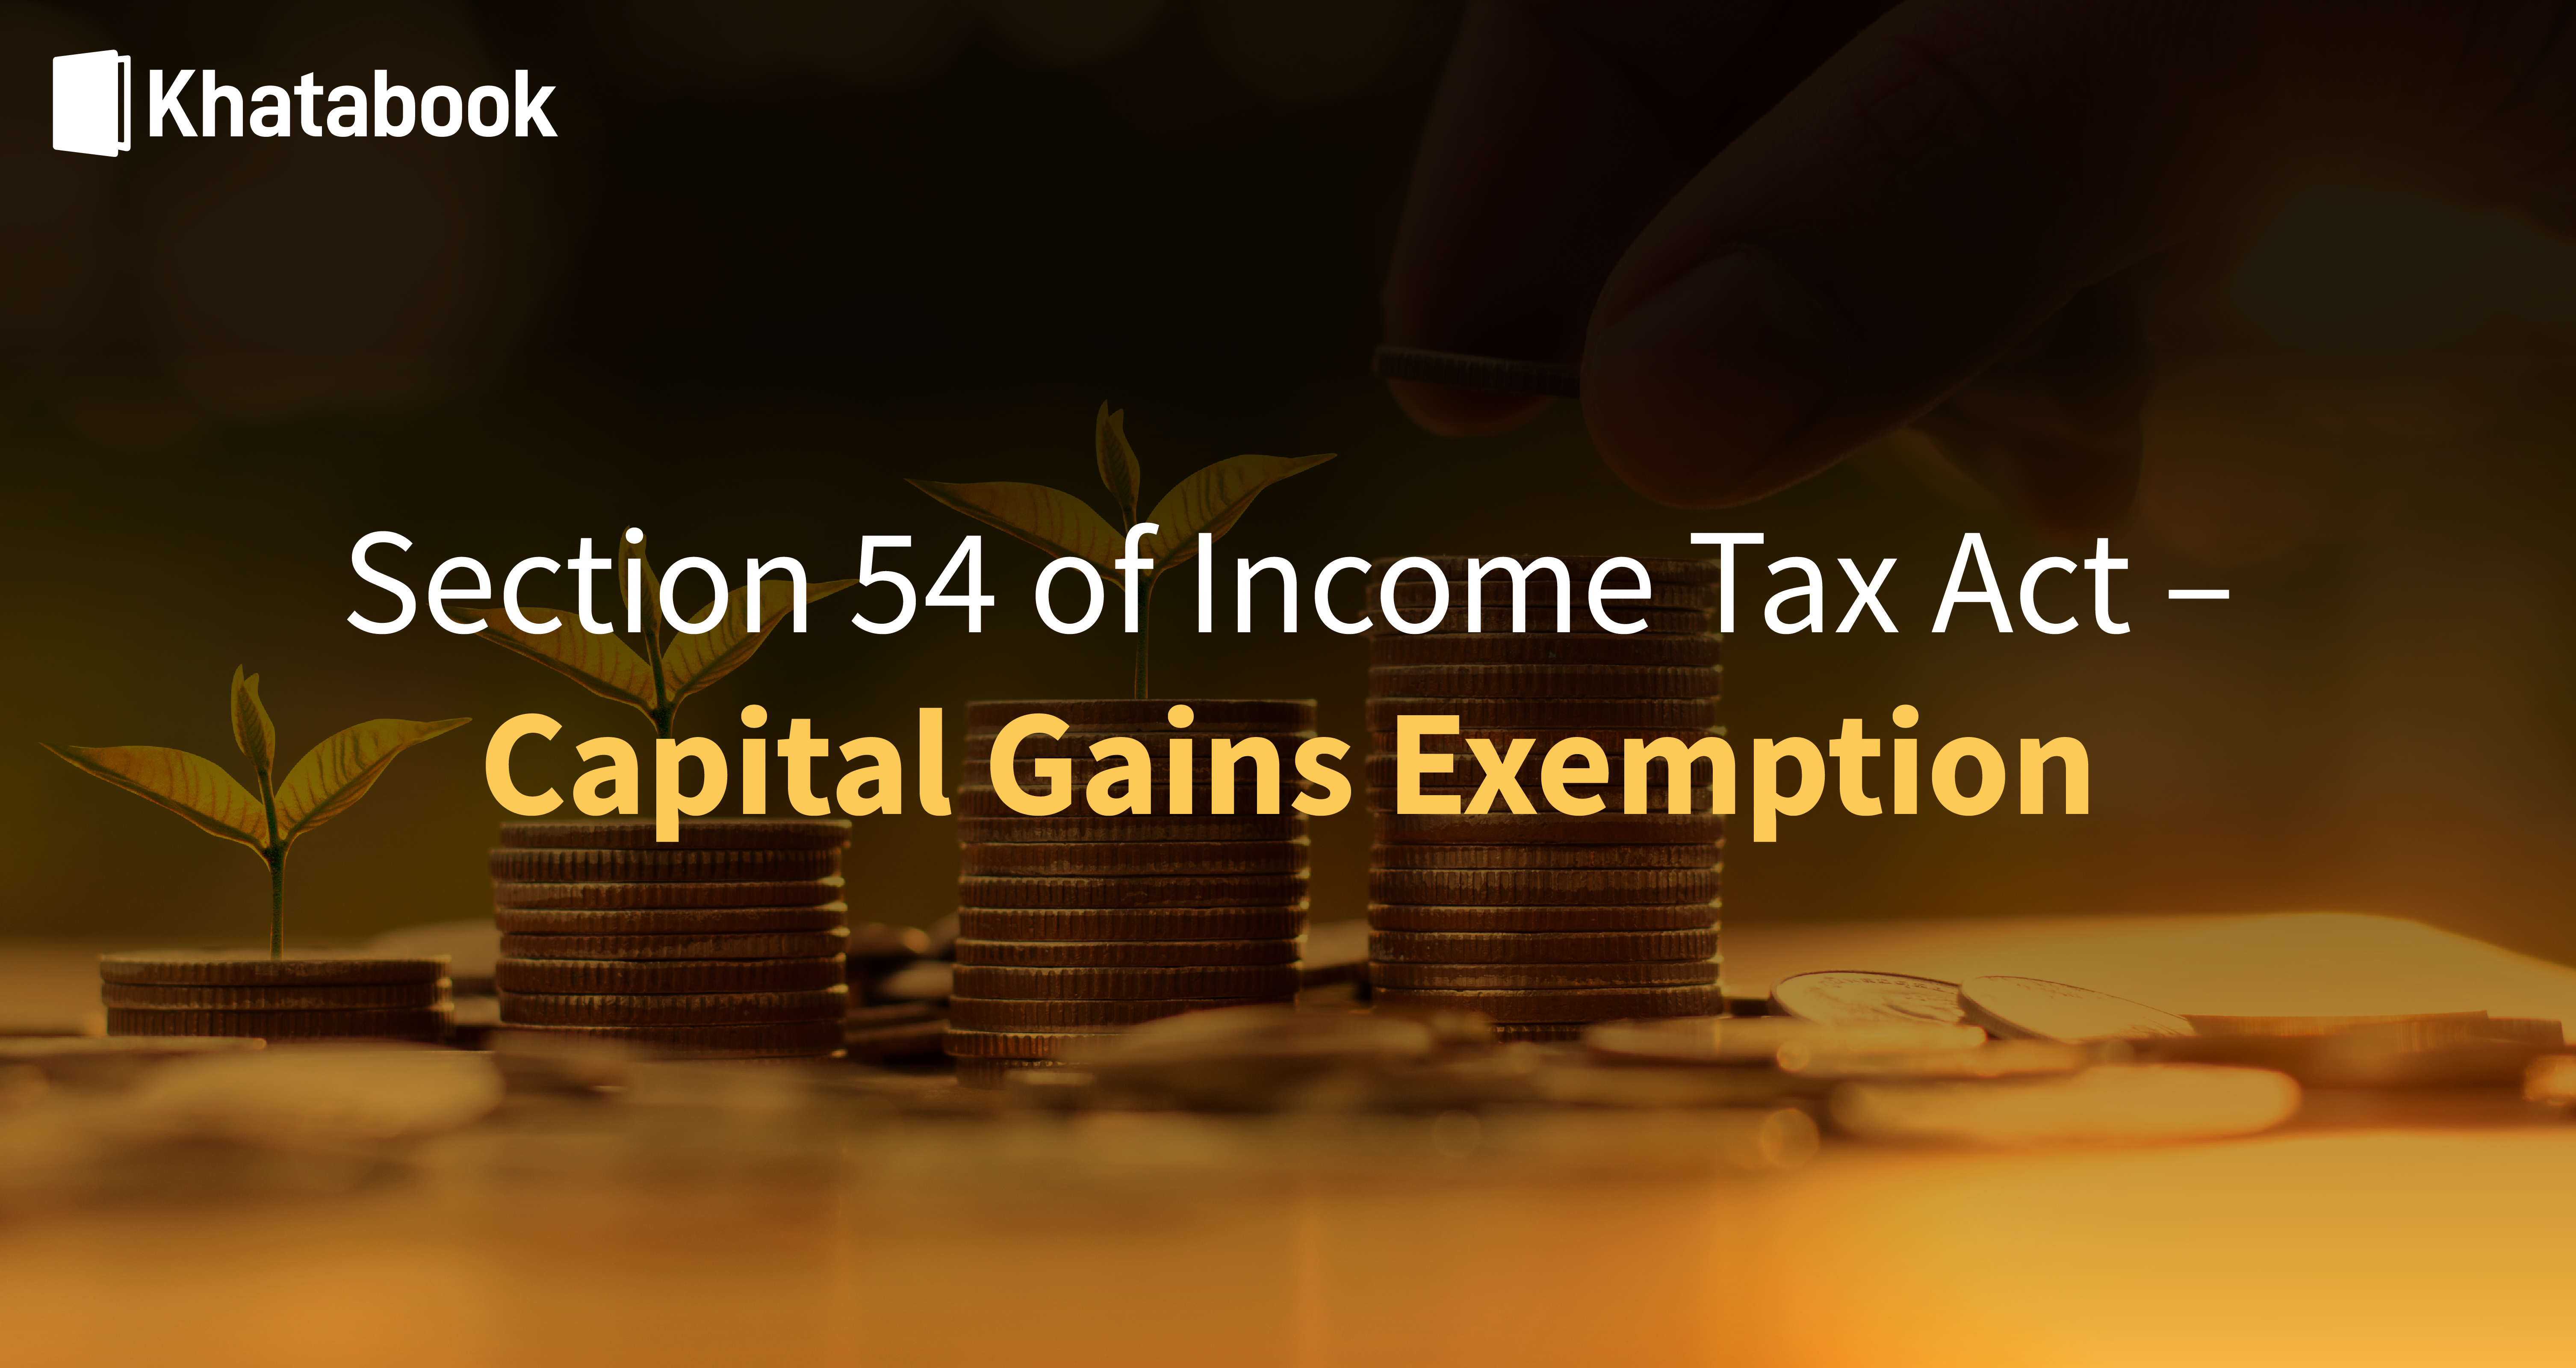 What are the Capital Gains Exemption Under Section 54 of Income Tax Act